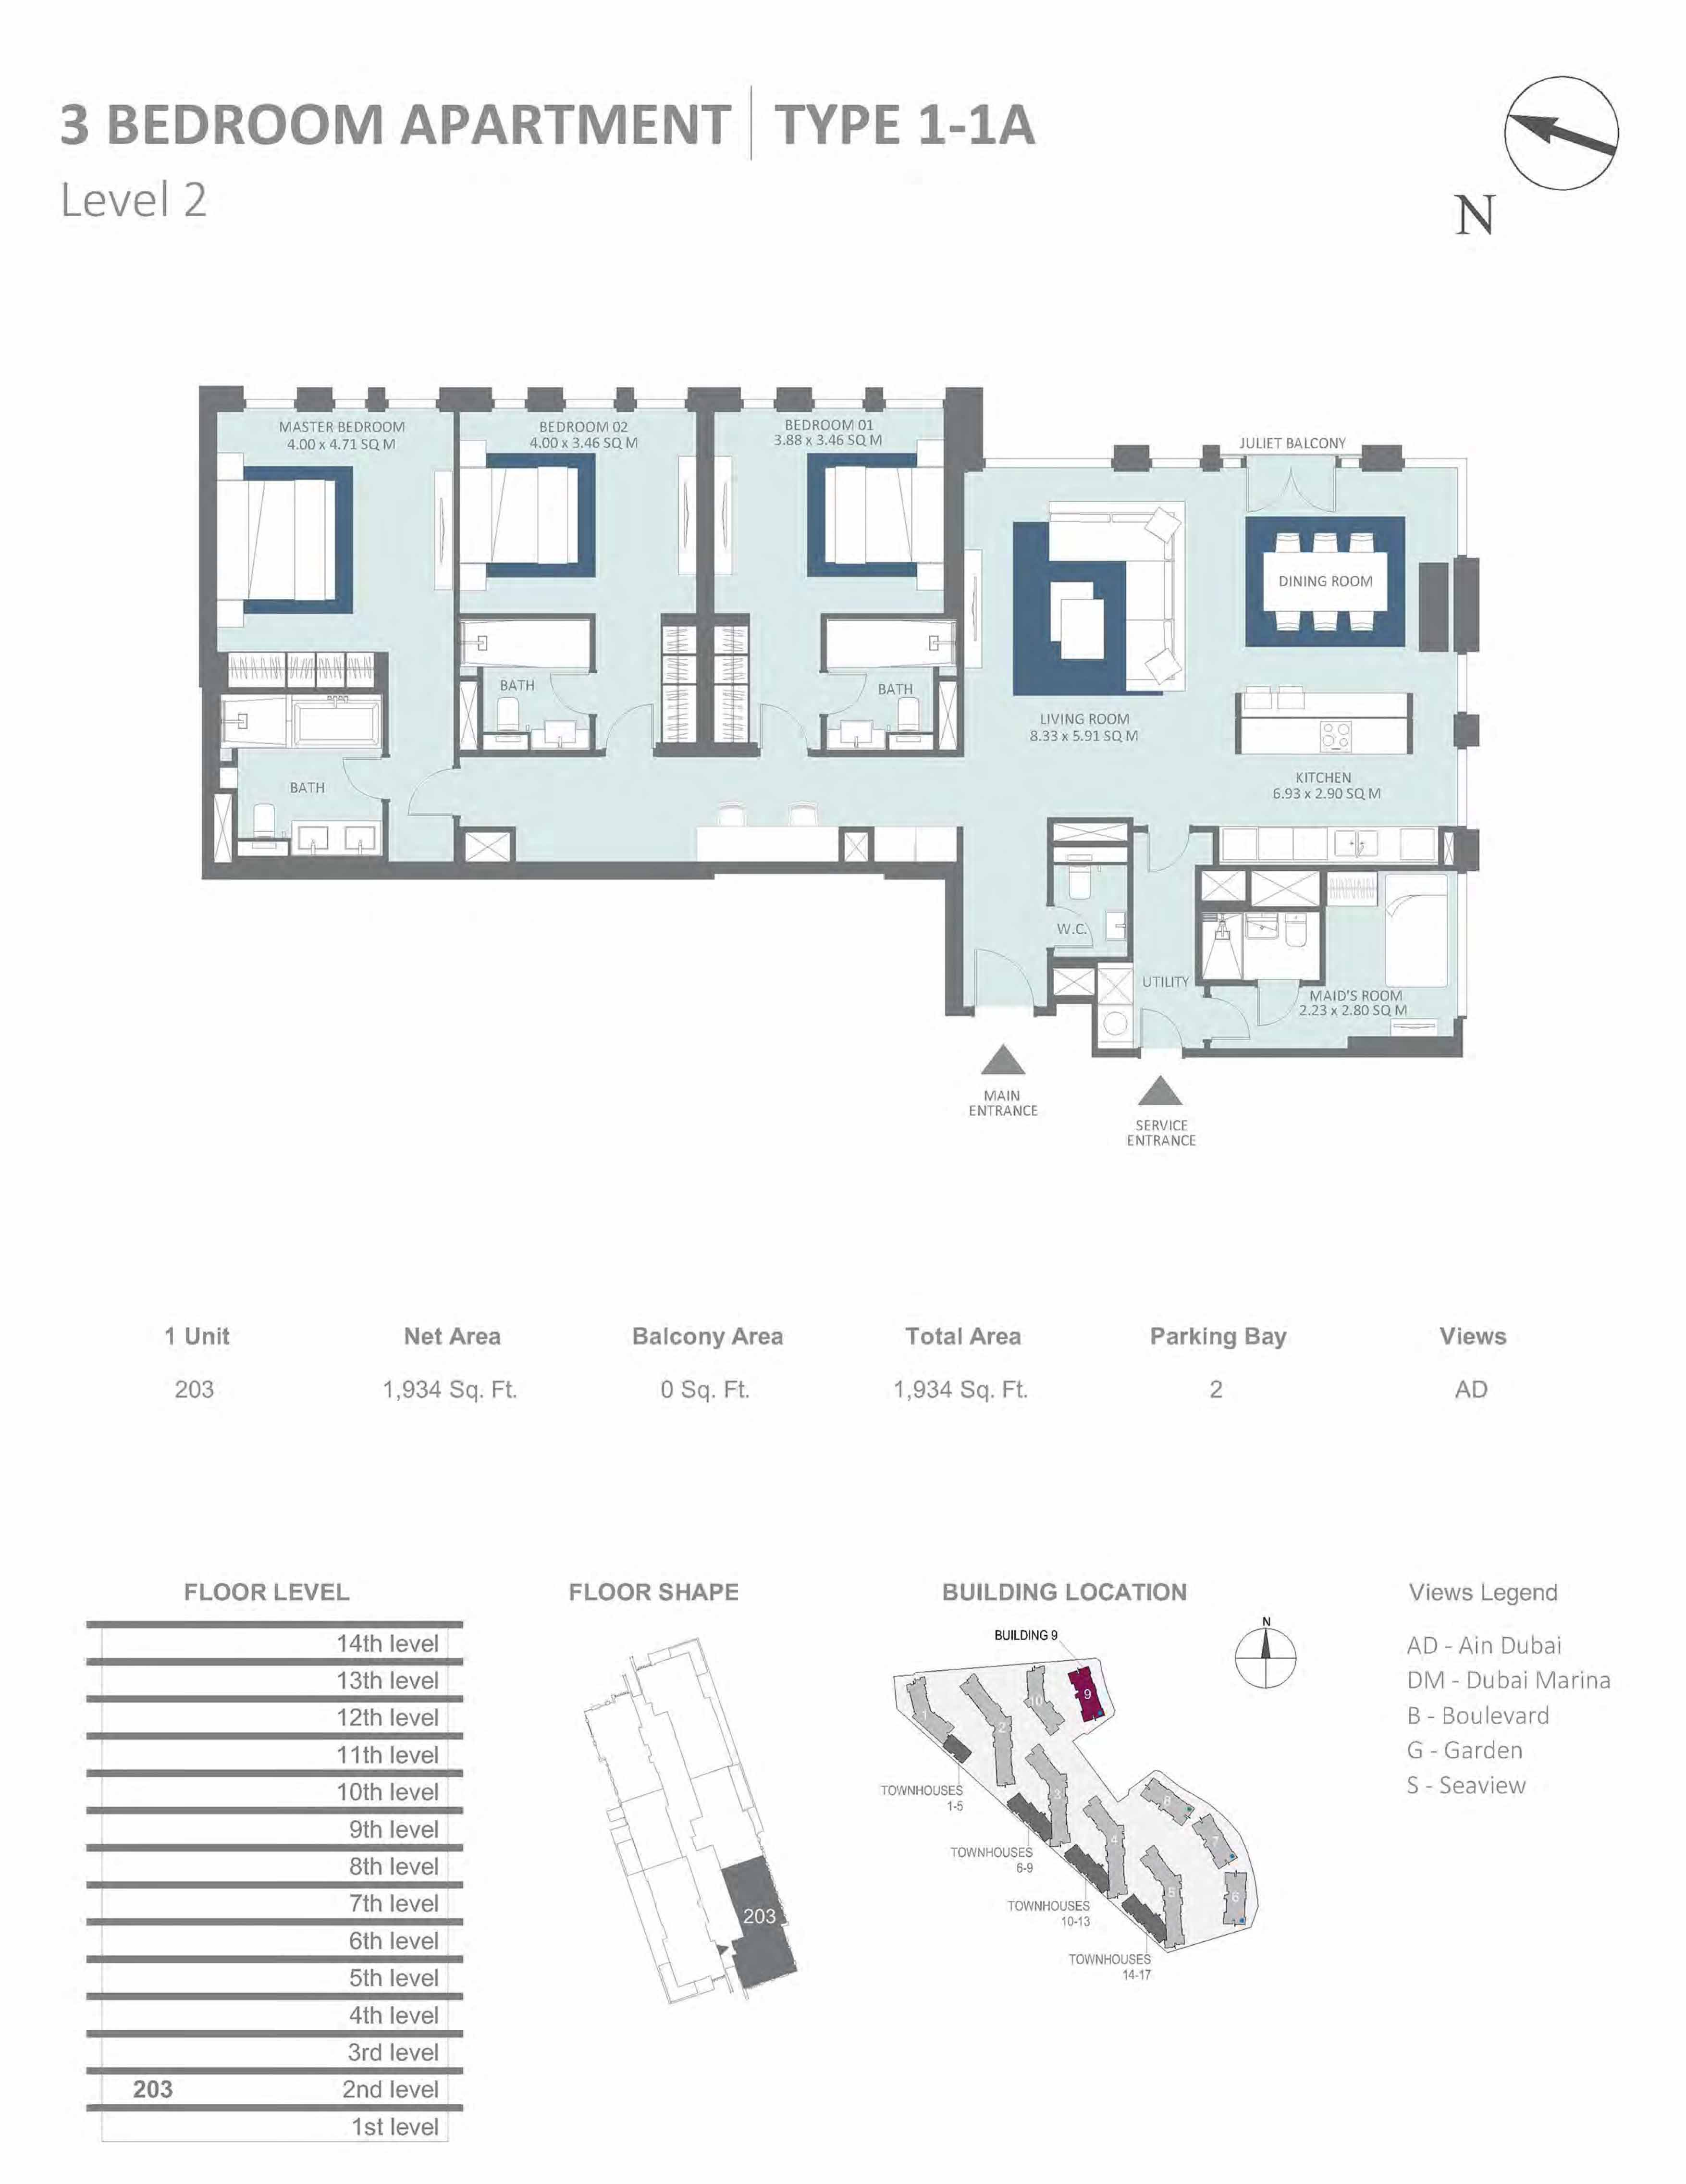 Building 9 - 3 Bedroom Type 1-1A, Level 2 Size 1934 sq.ft